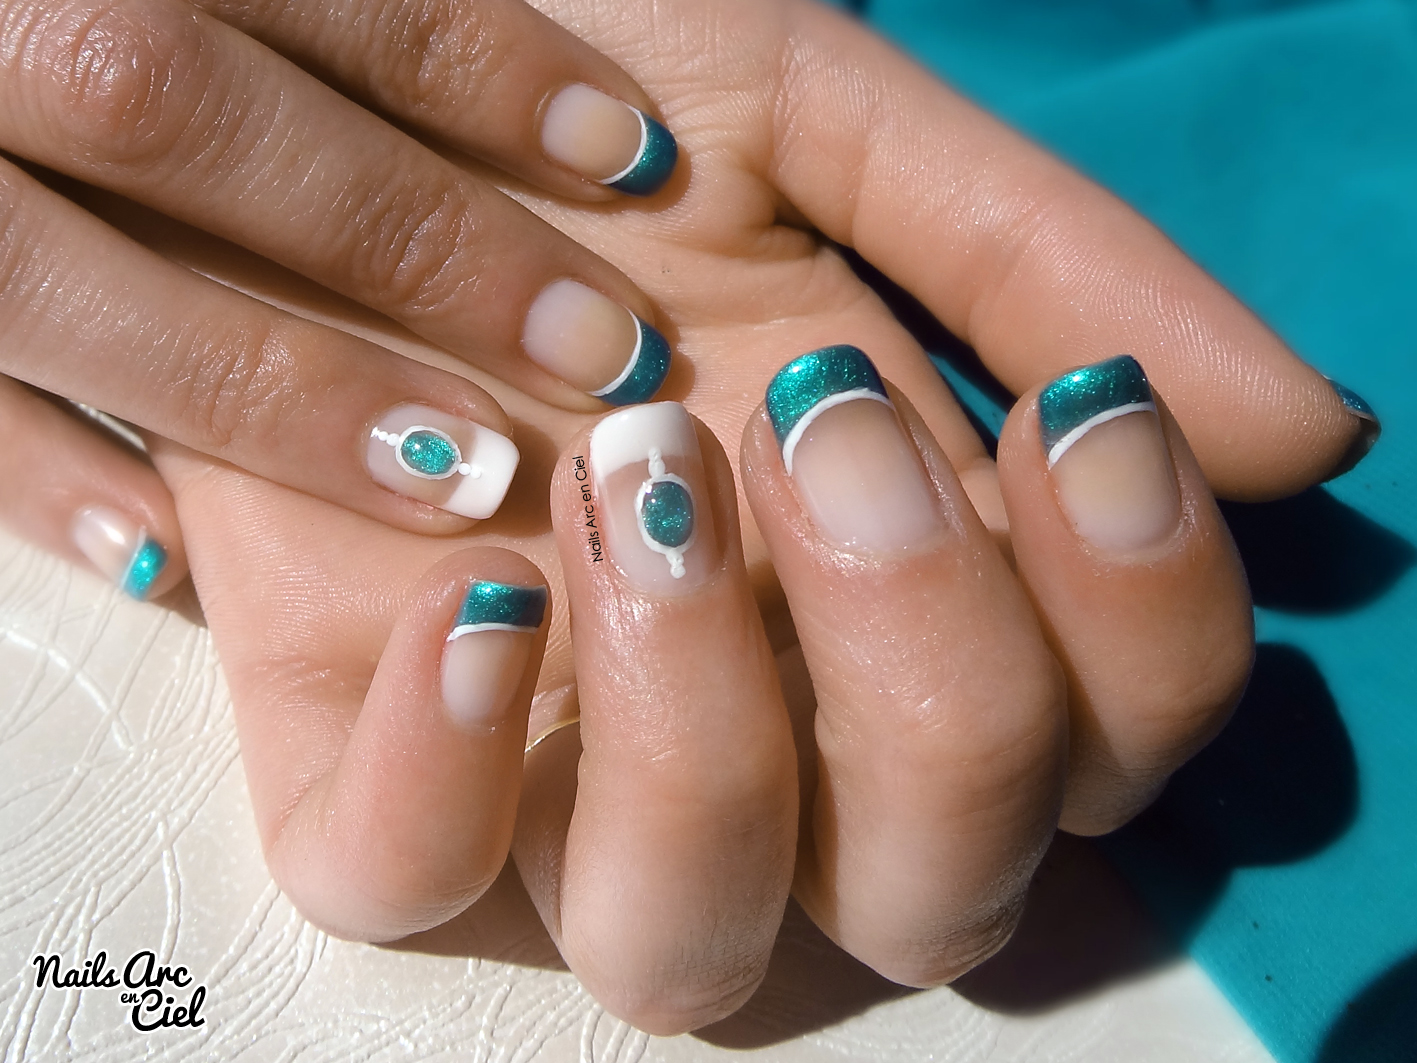 nails arc en ciel nail art pierre liquide turquoise bijoux d 39 ongle. Black Bedroom Furniture Sets. Home Design Ideas